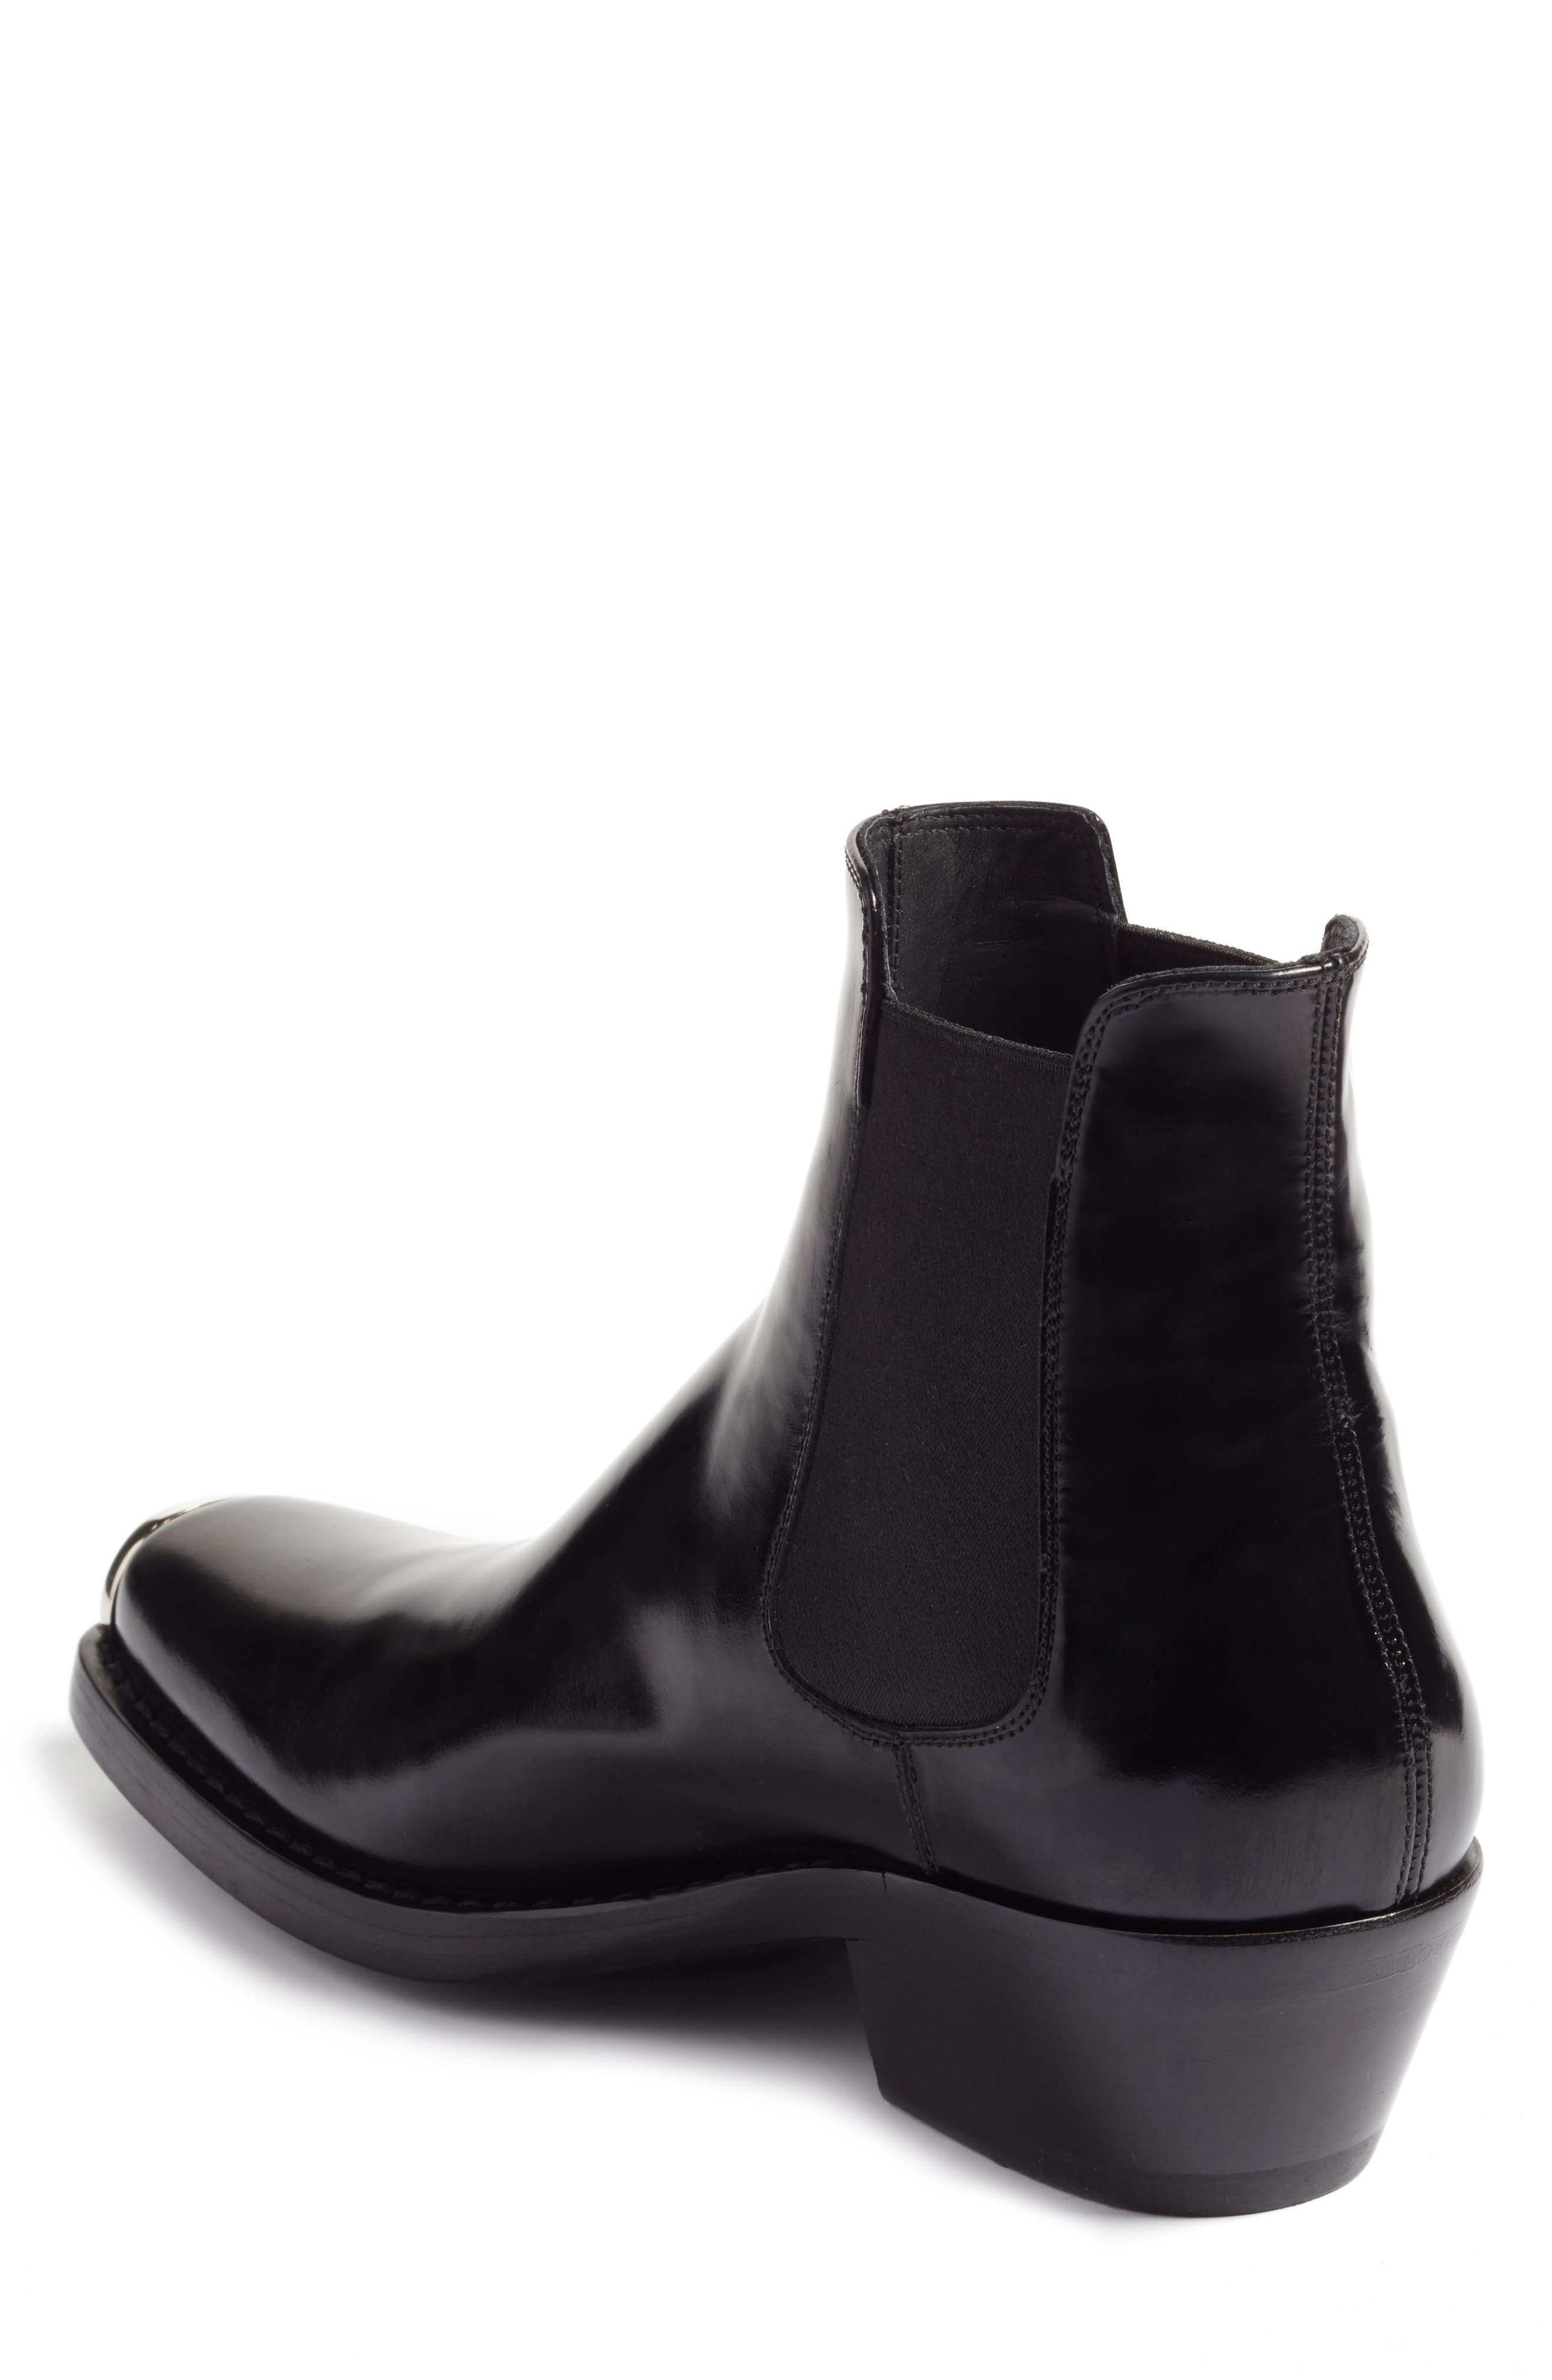 Claire Western Chelsea Boot,                             Alternate thumbnail 2, color,                             BLACK ABRASIVATO